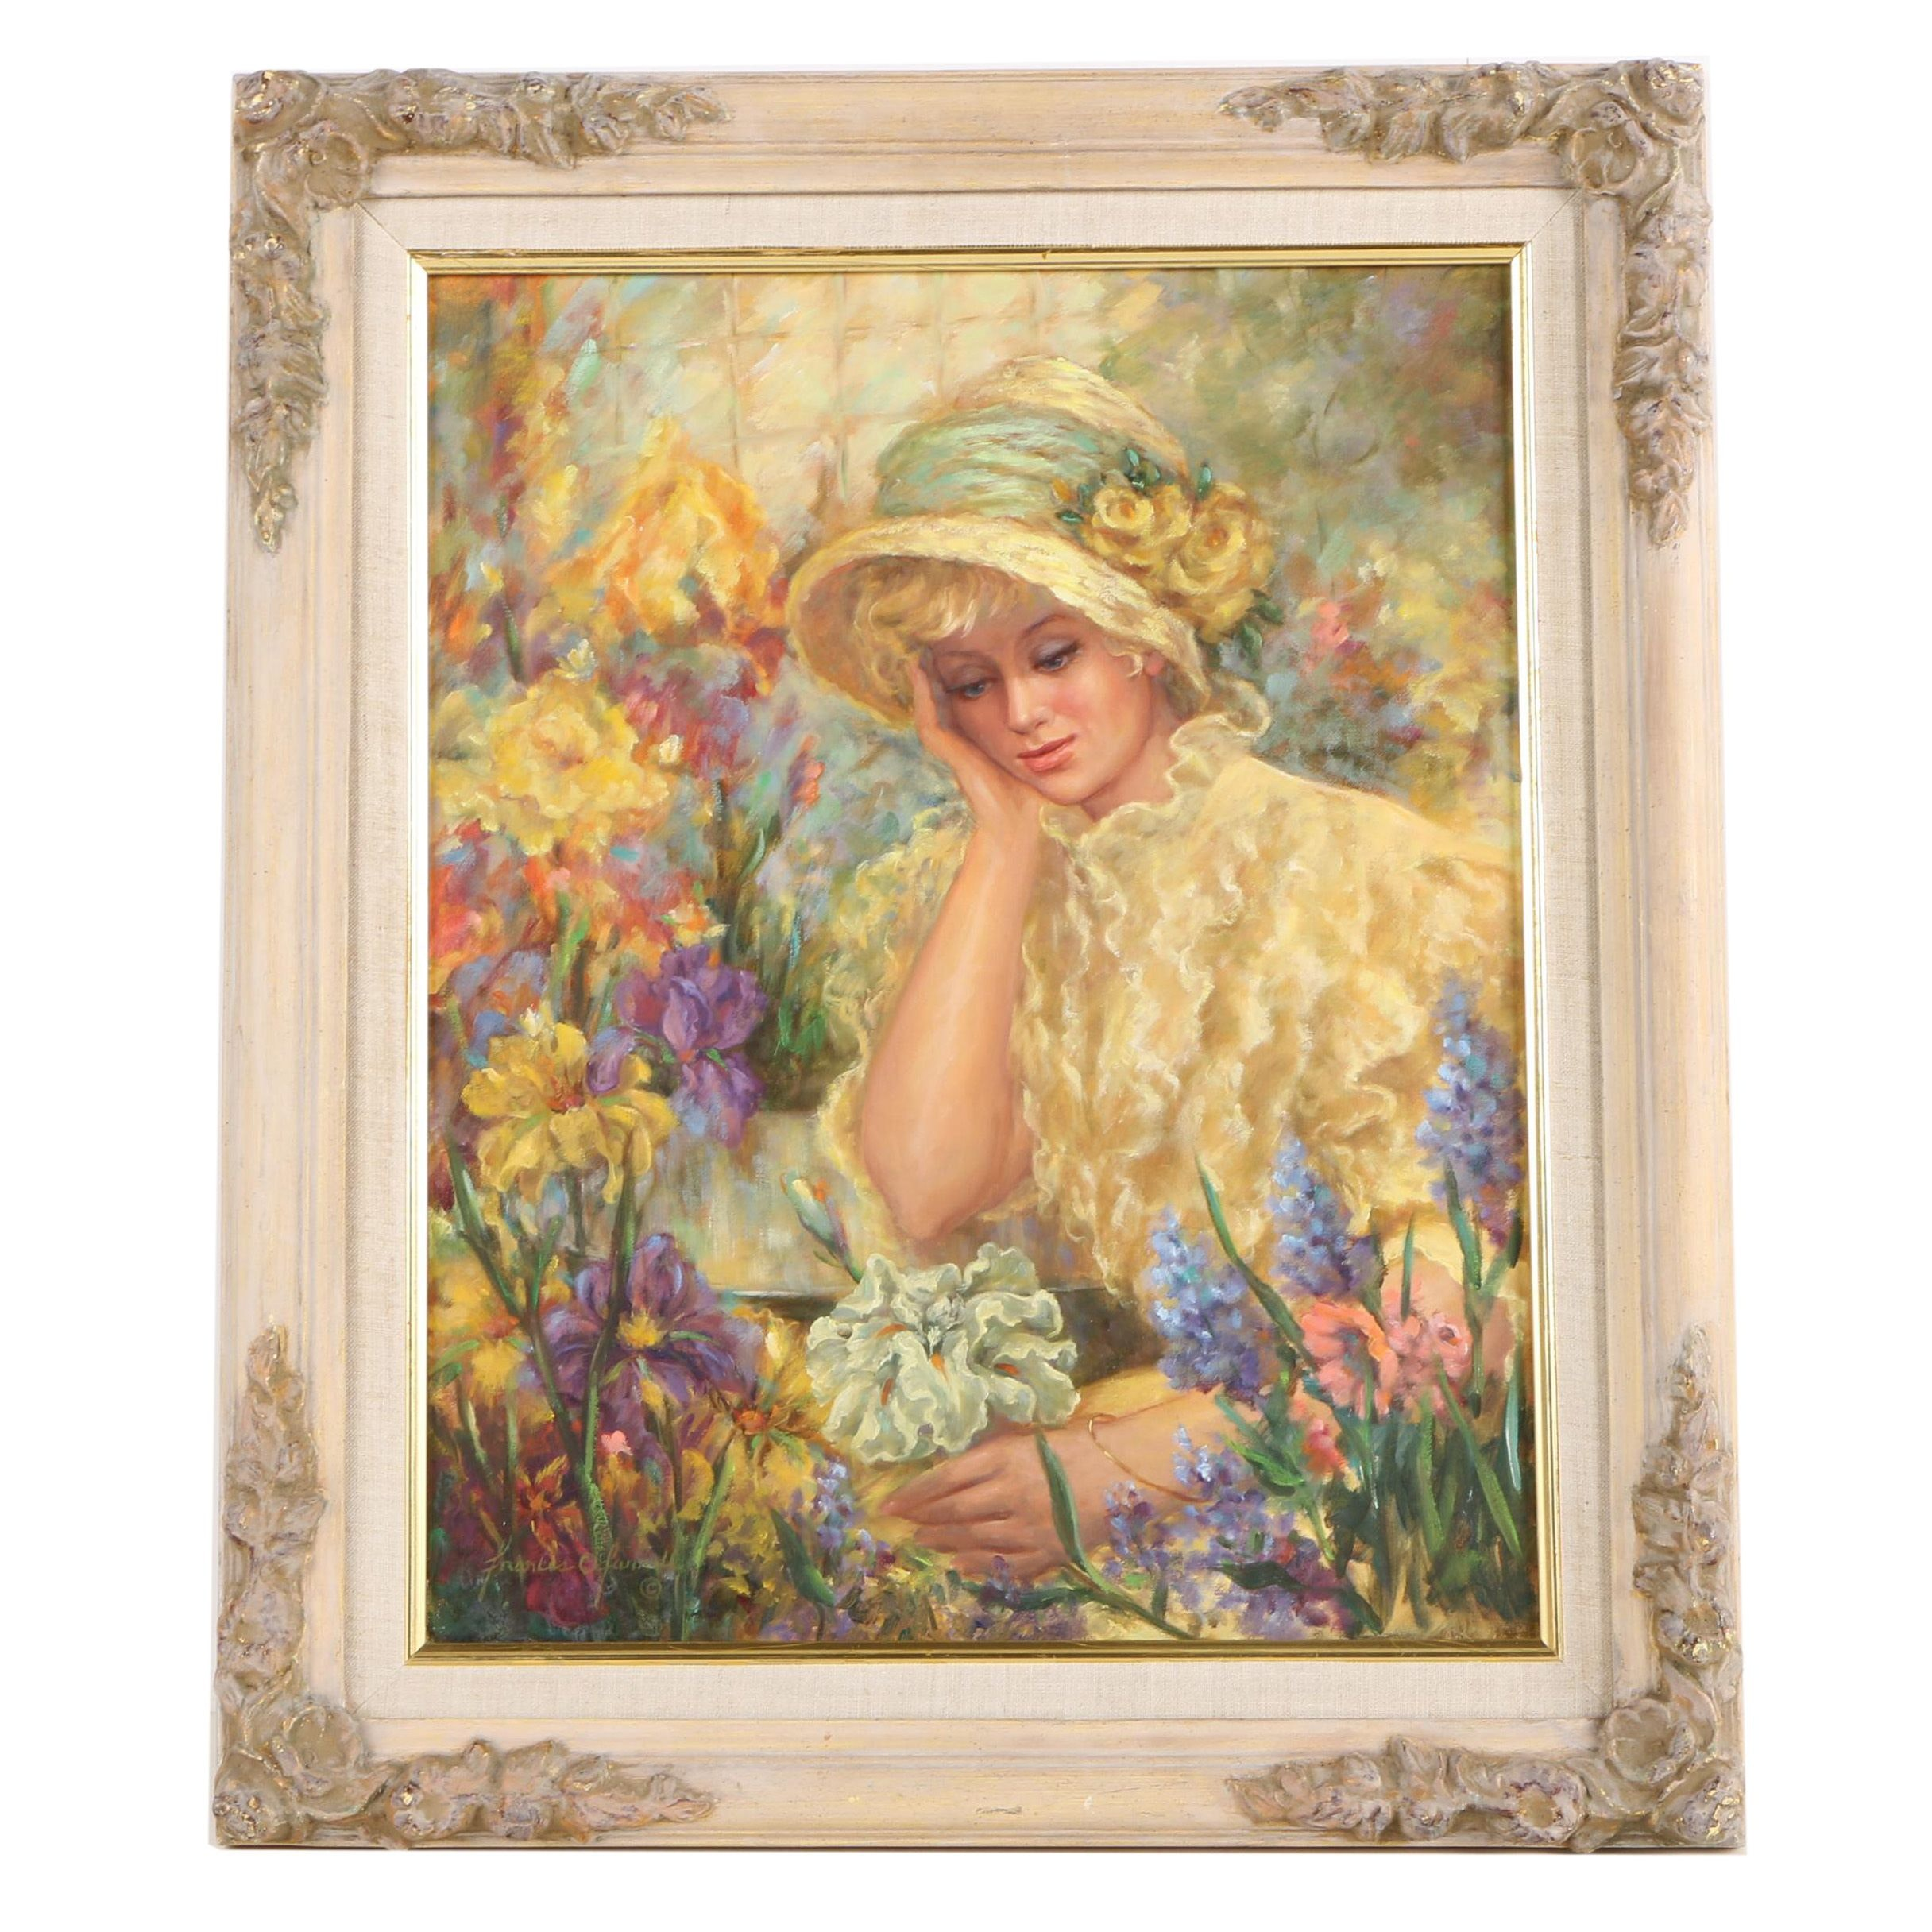 Francis O'Farrell Oil Painting Portrait of Woman in Flower Garden